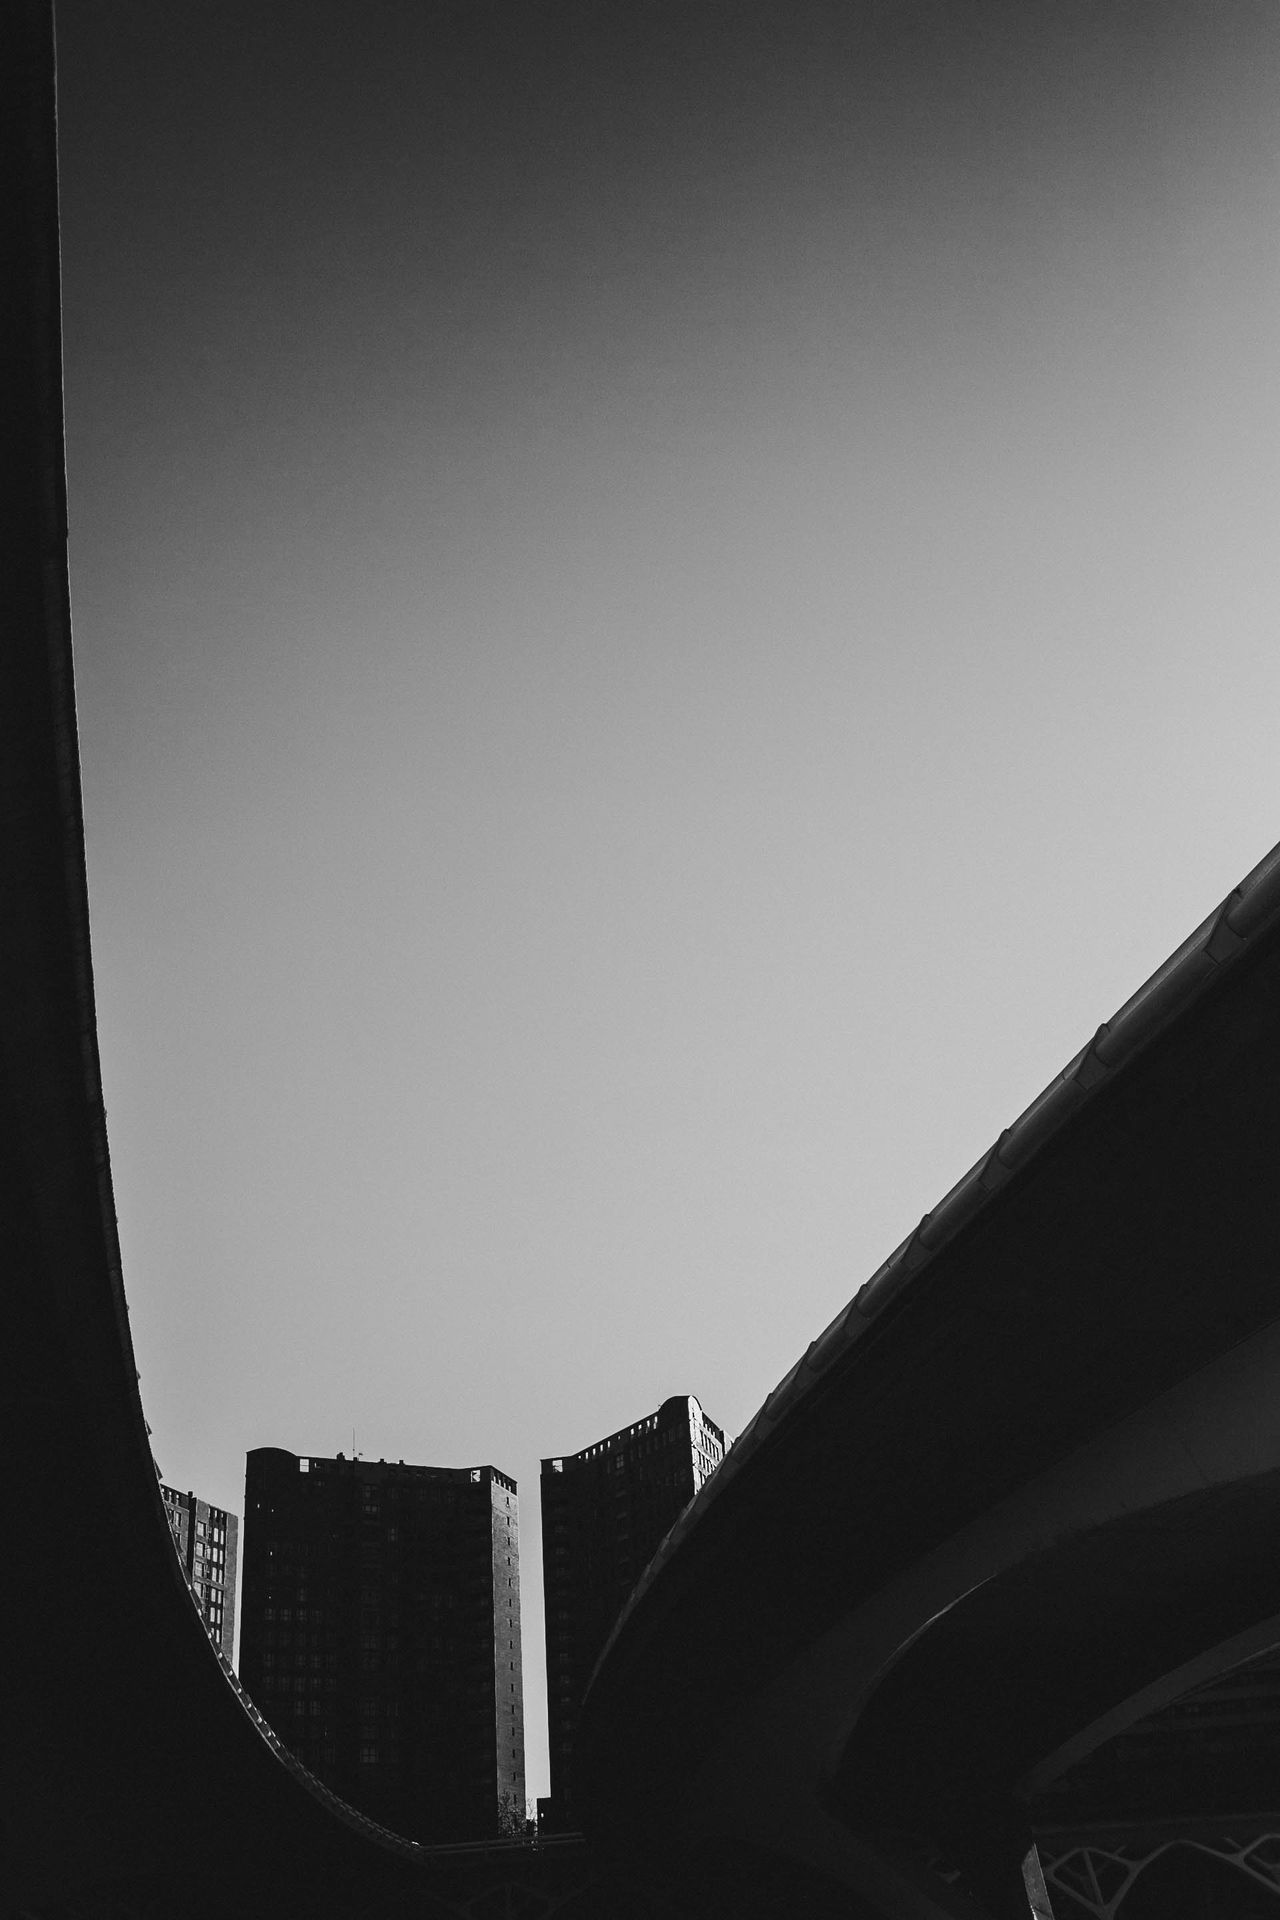 Architecture Black And White Building Exterior Built Structure City Clear Sky Copy Space Day Low Angle View Modern No People Outdoors Sky Valencia, Spain València